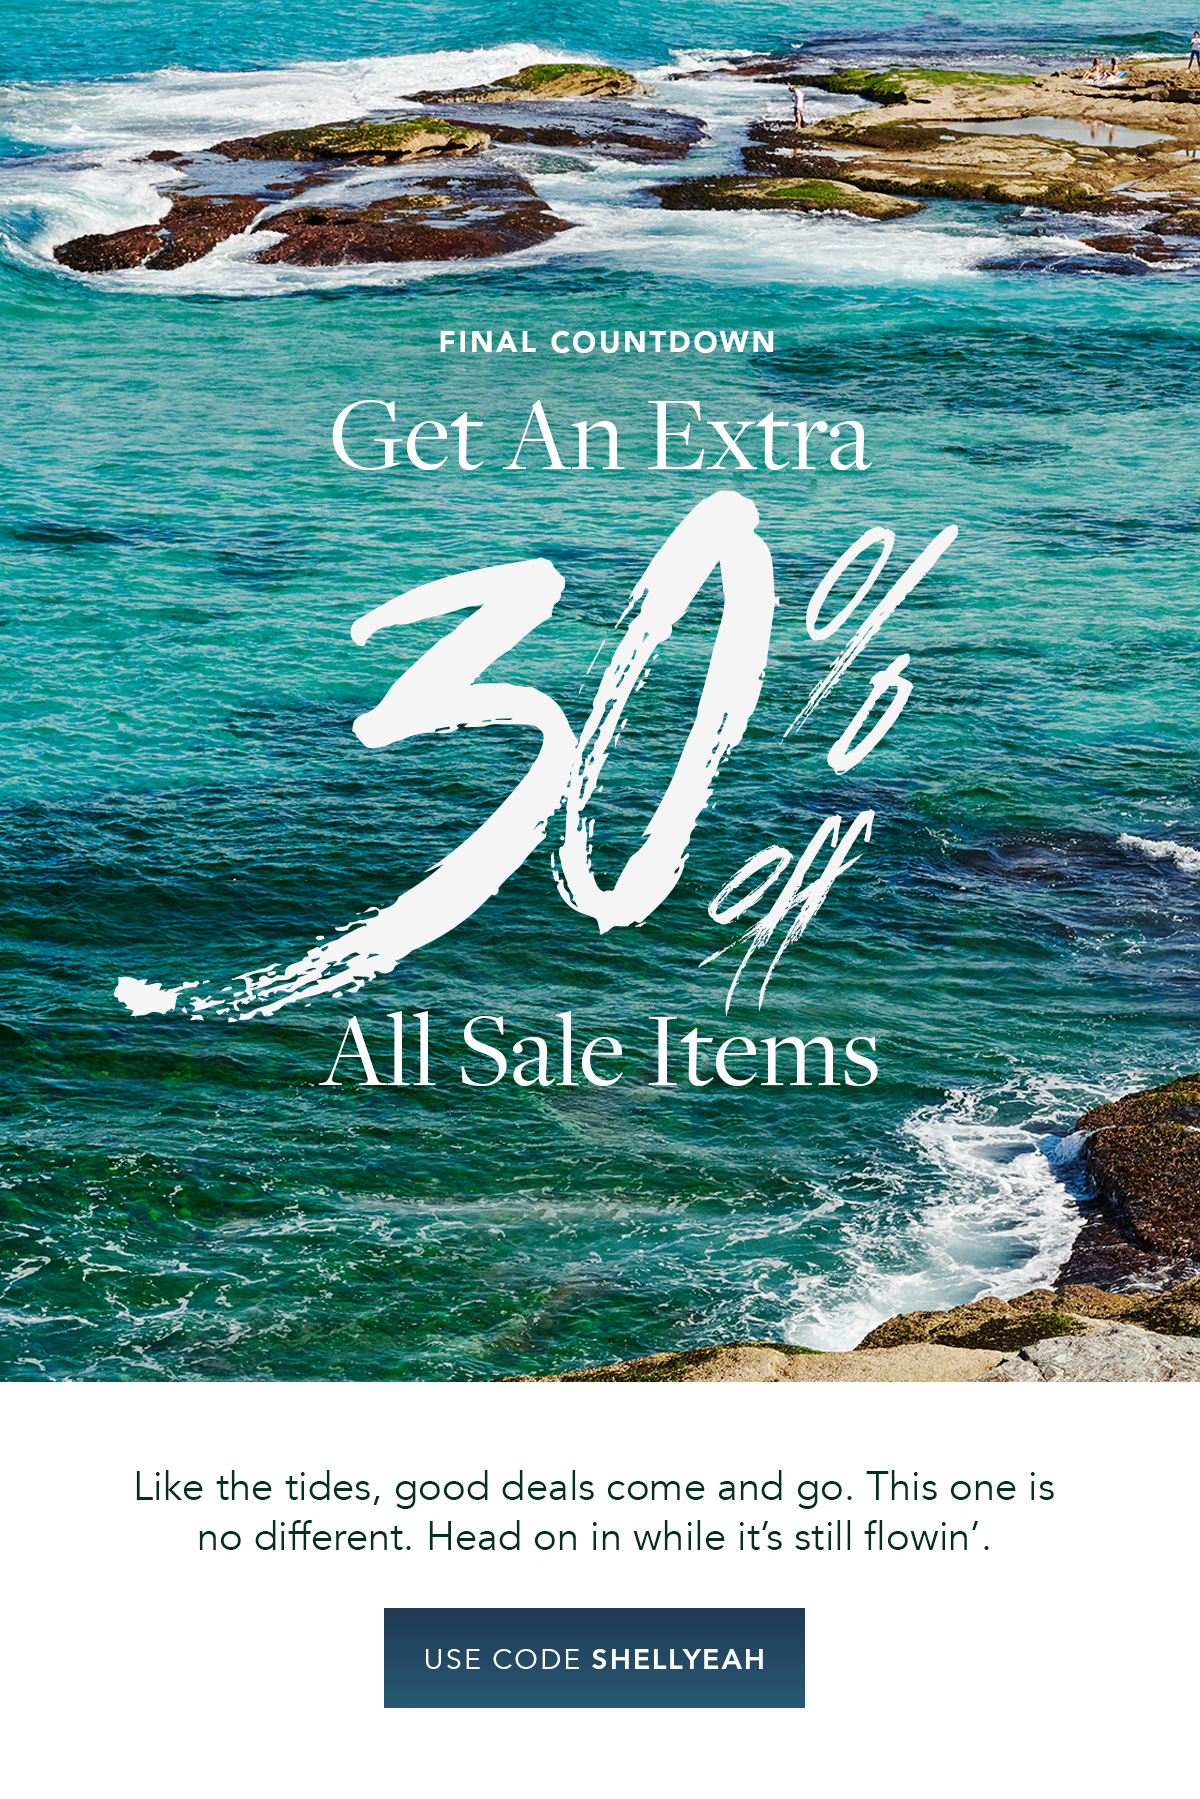 Get an Extra 30% Off All Sale Items with code SHELLYEAH